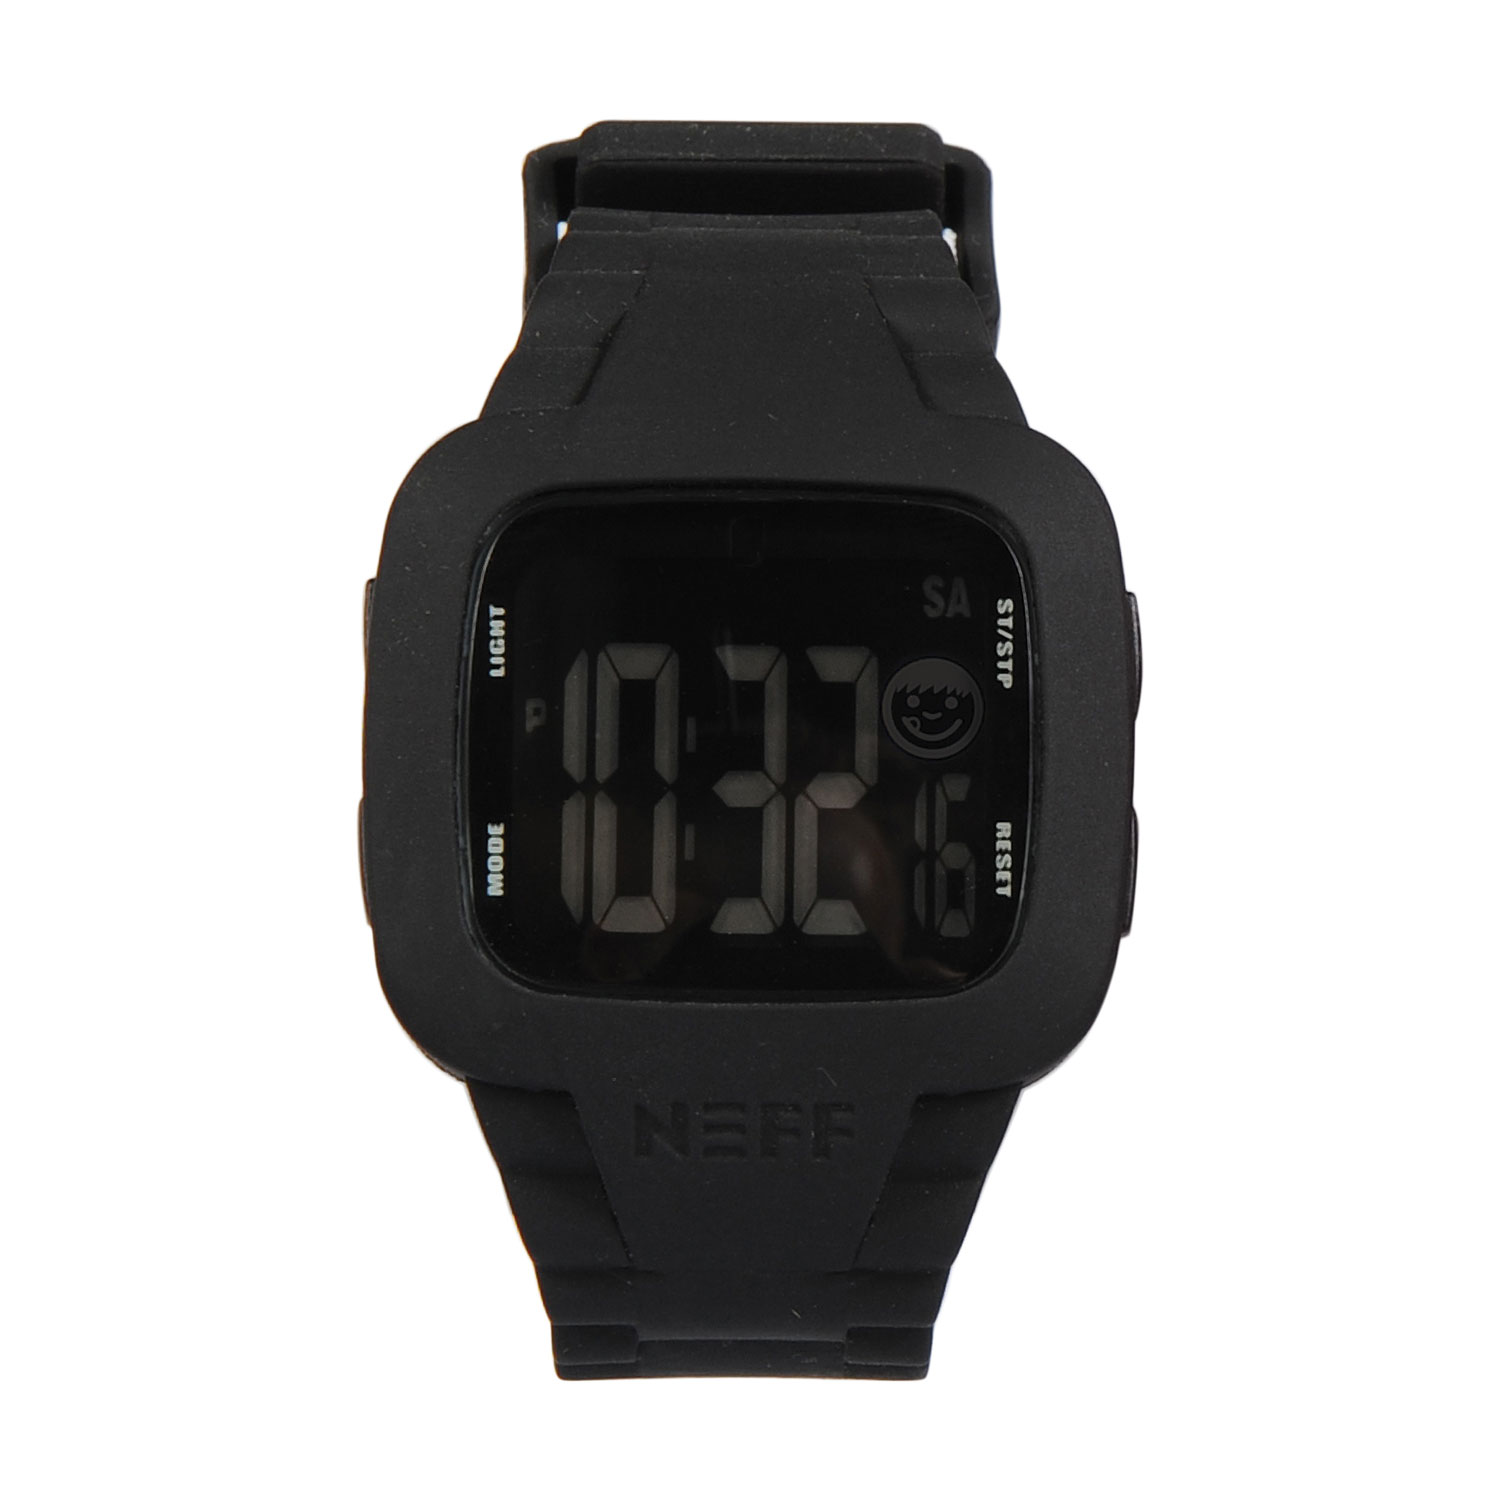 Skateboard Key Features of the Neff Steve Watch: Custom Neff Design Double injection silicon strap with PC case Alarm Military time Backlight and Date Water Resistant to 165FT - $50.00